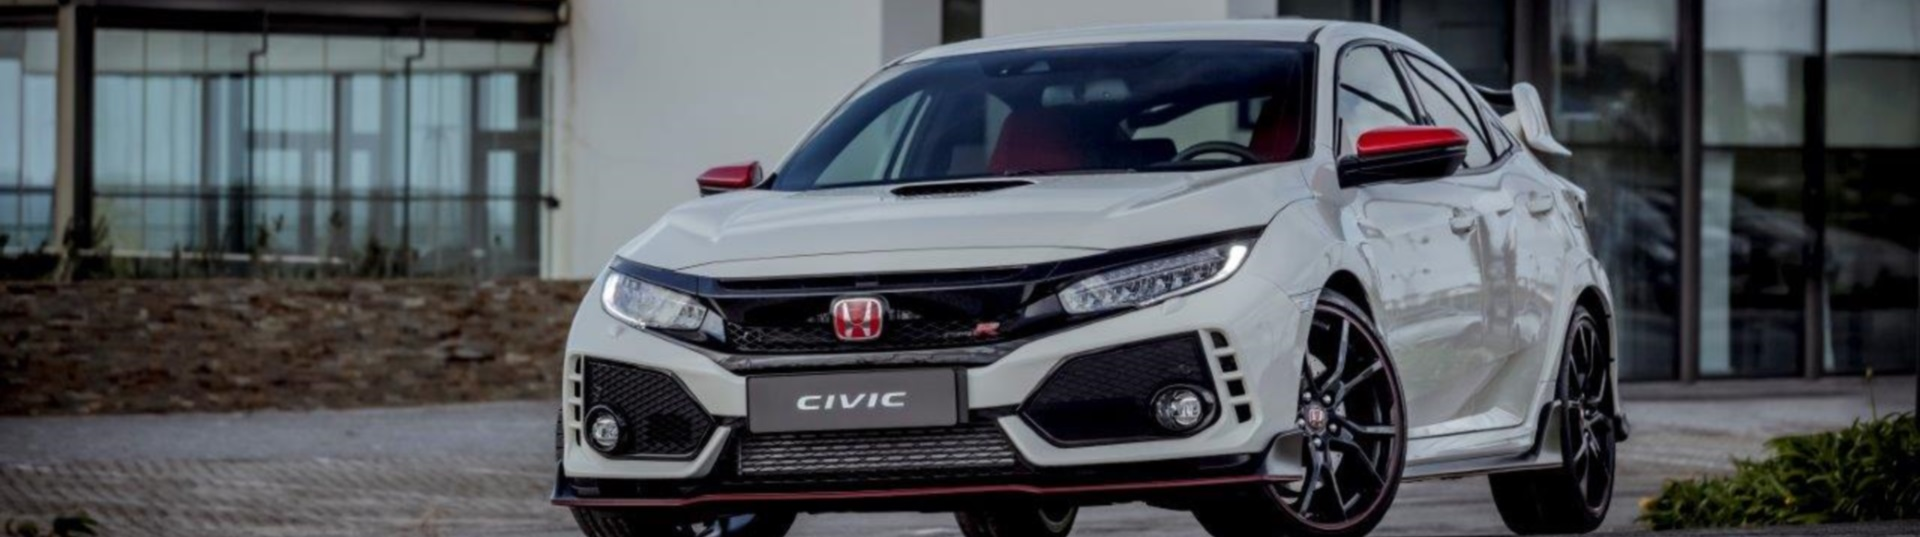 Honda Civic_Type_R_1920